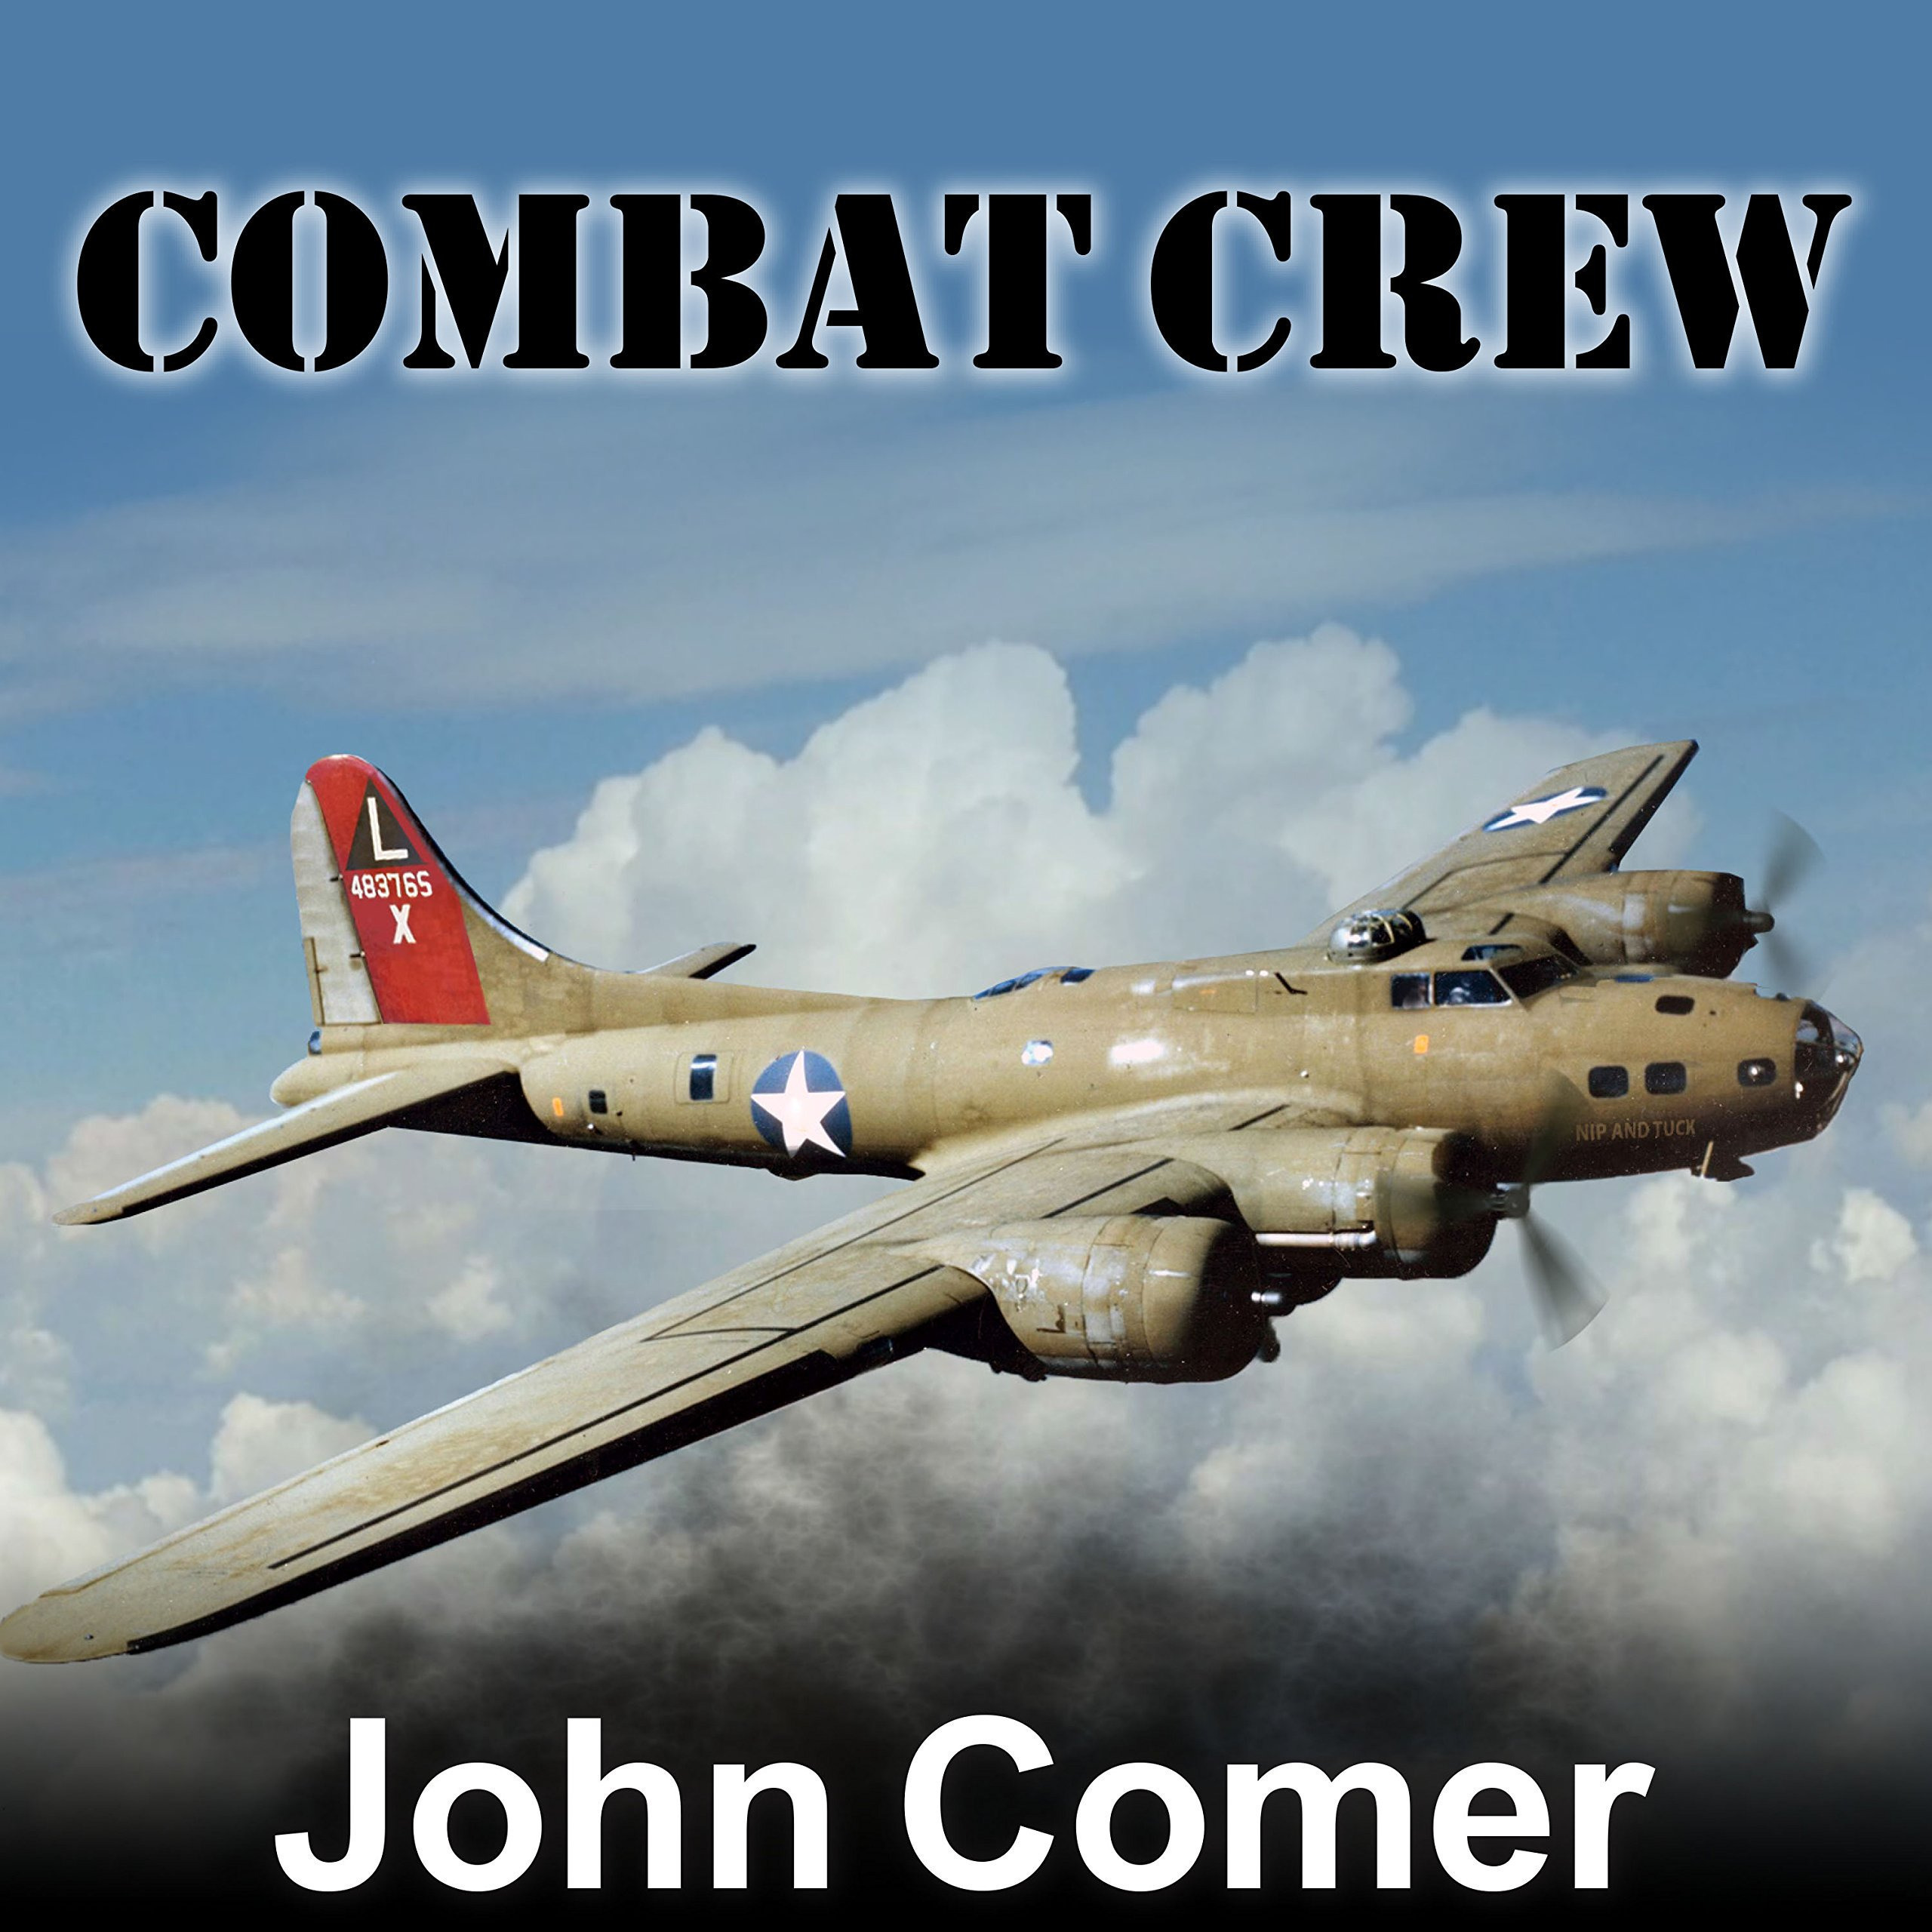 Printable Combat Crew: The Story of 25 Combat Missions Over Europe From the Daily Journal of a B-17 Gunner Audiobook Cover Art